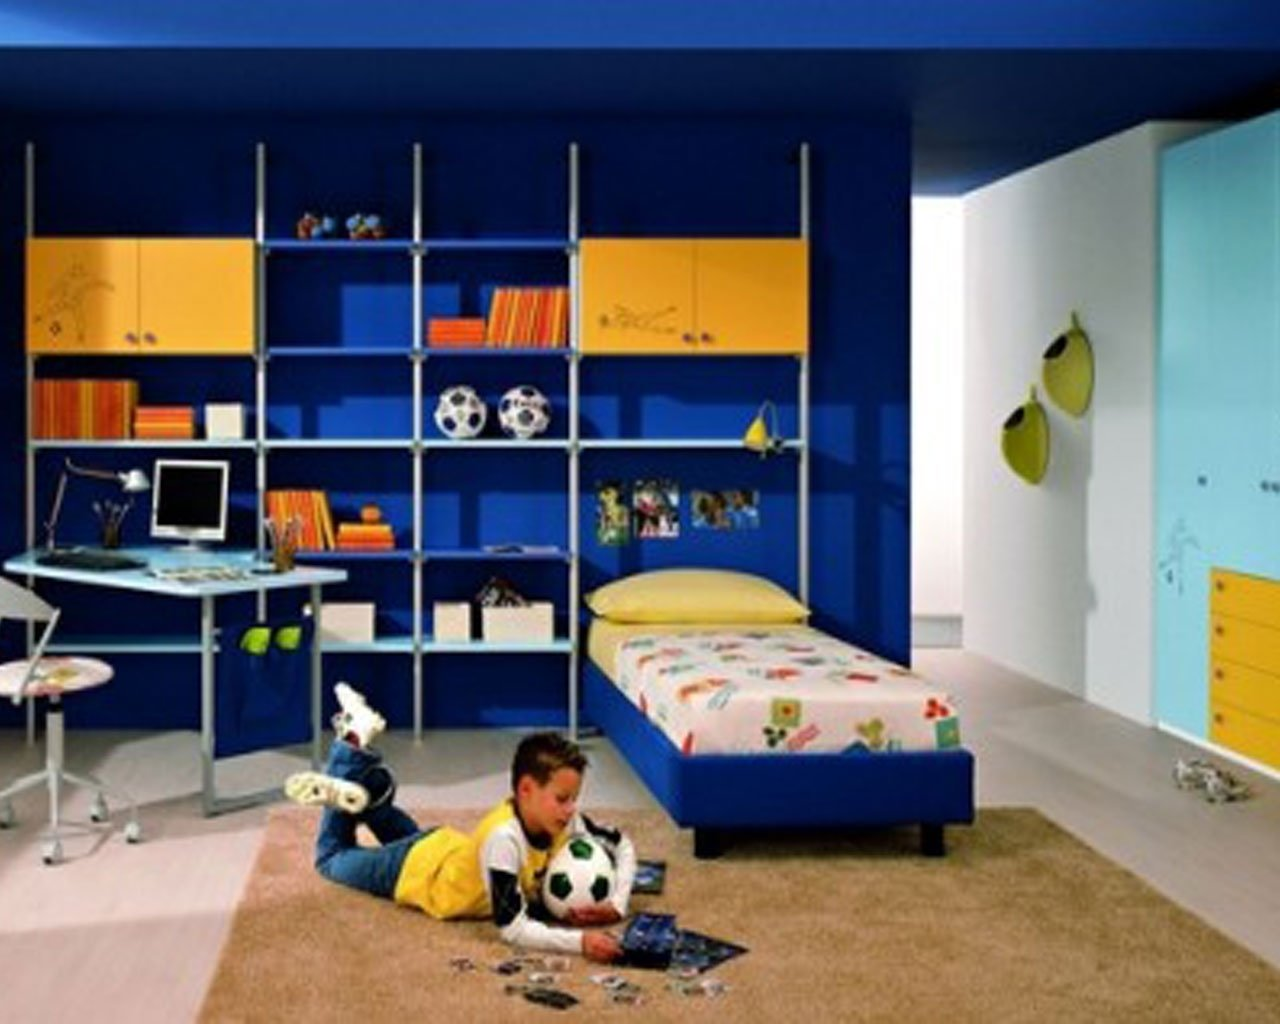 10 Stunning Kids Room Ideas For Boys childrens bedroom designs outstanding childrens bedroom designs and